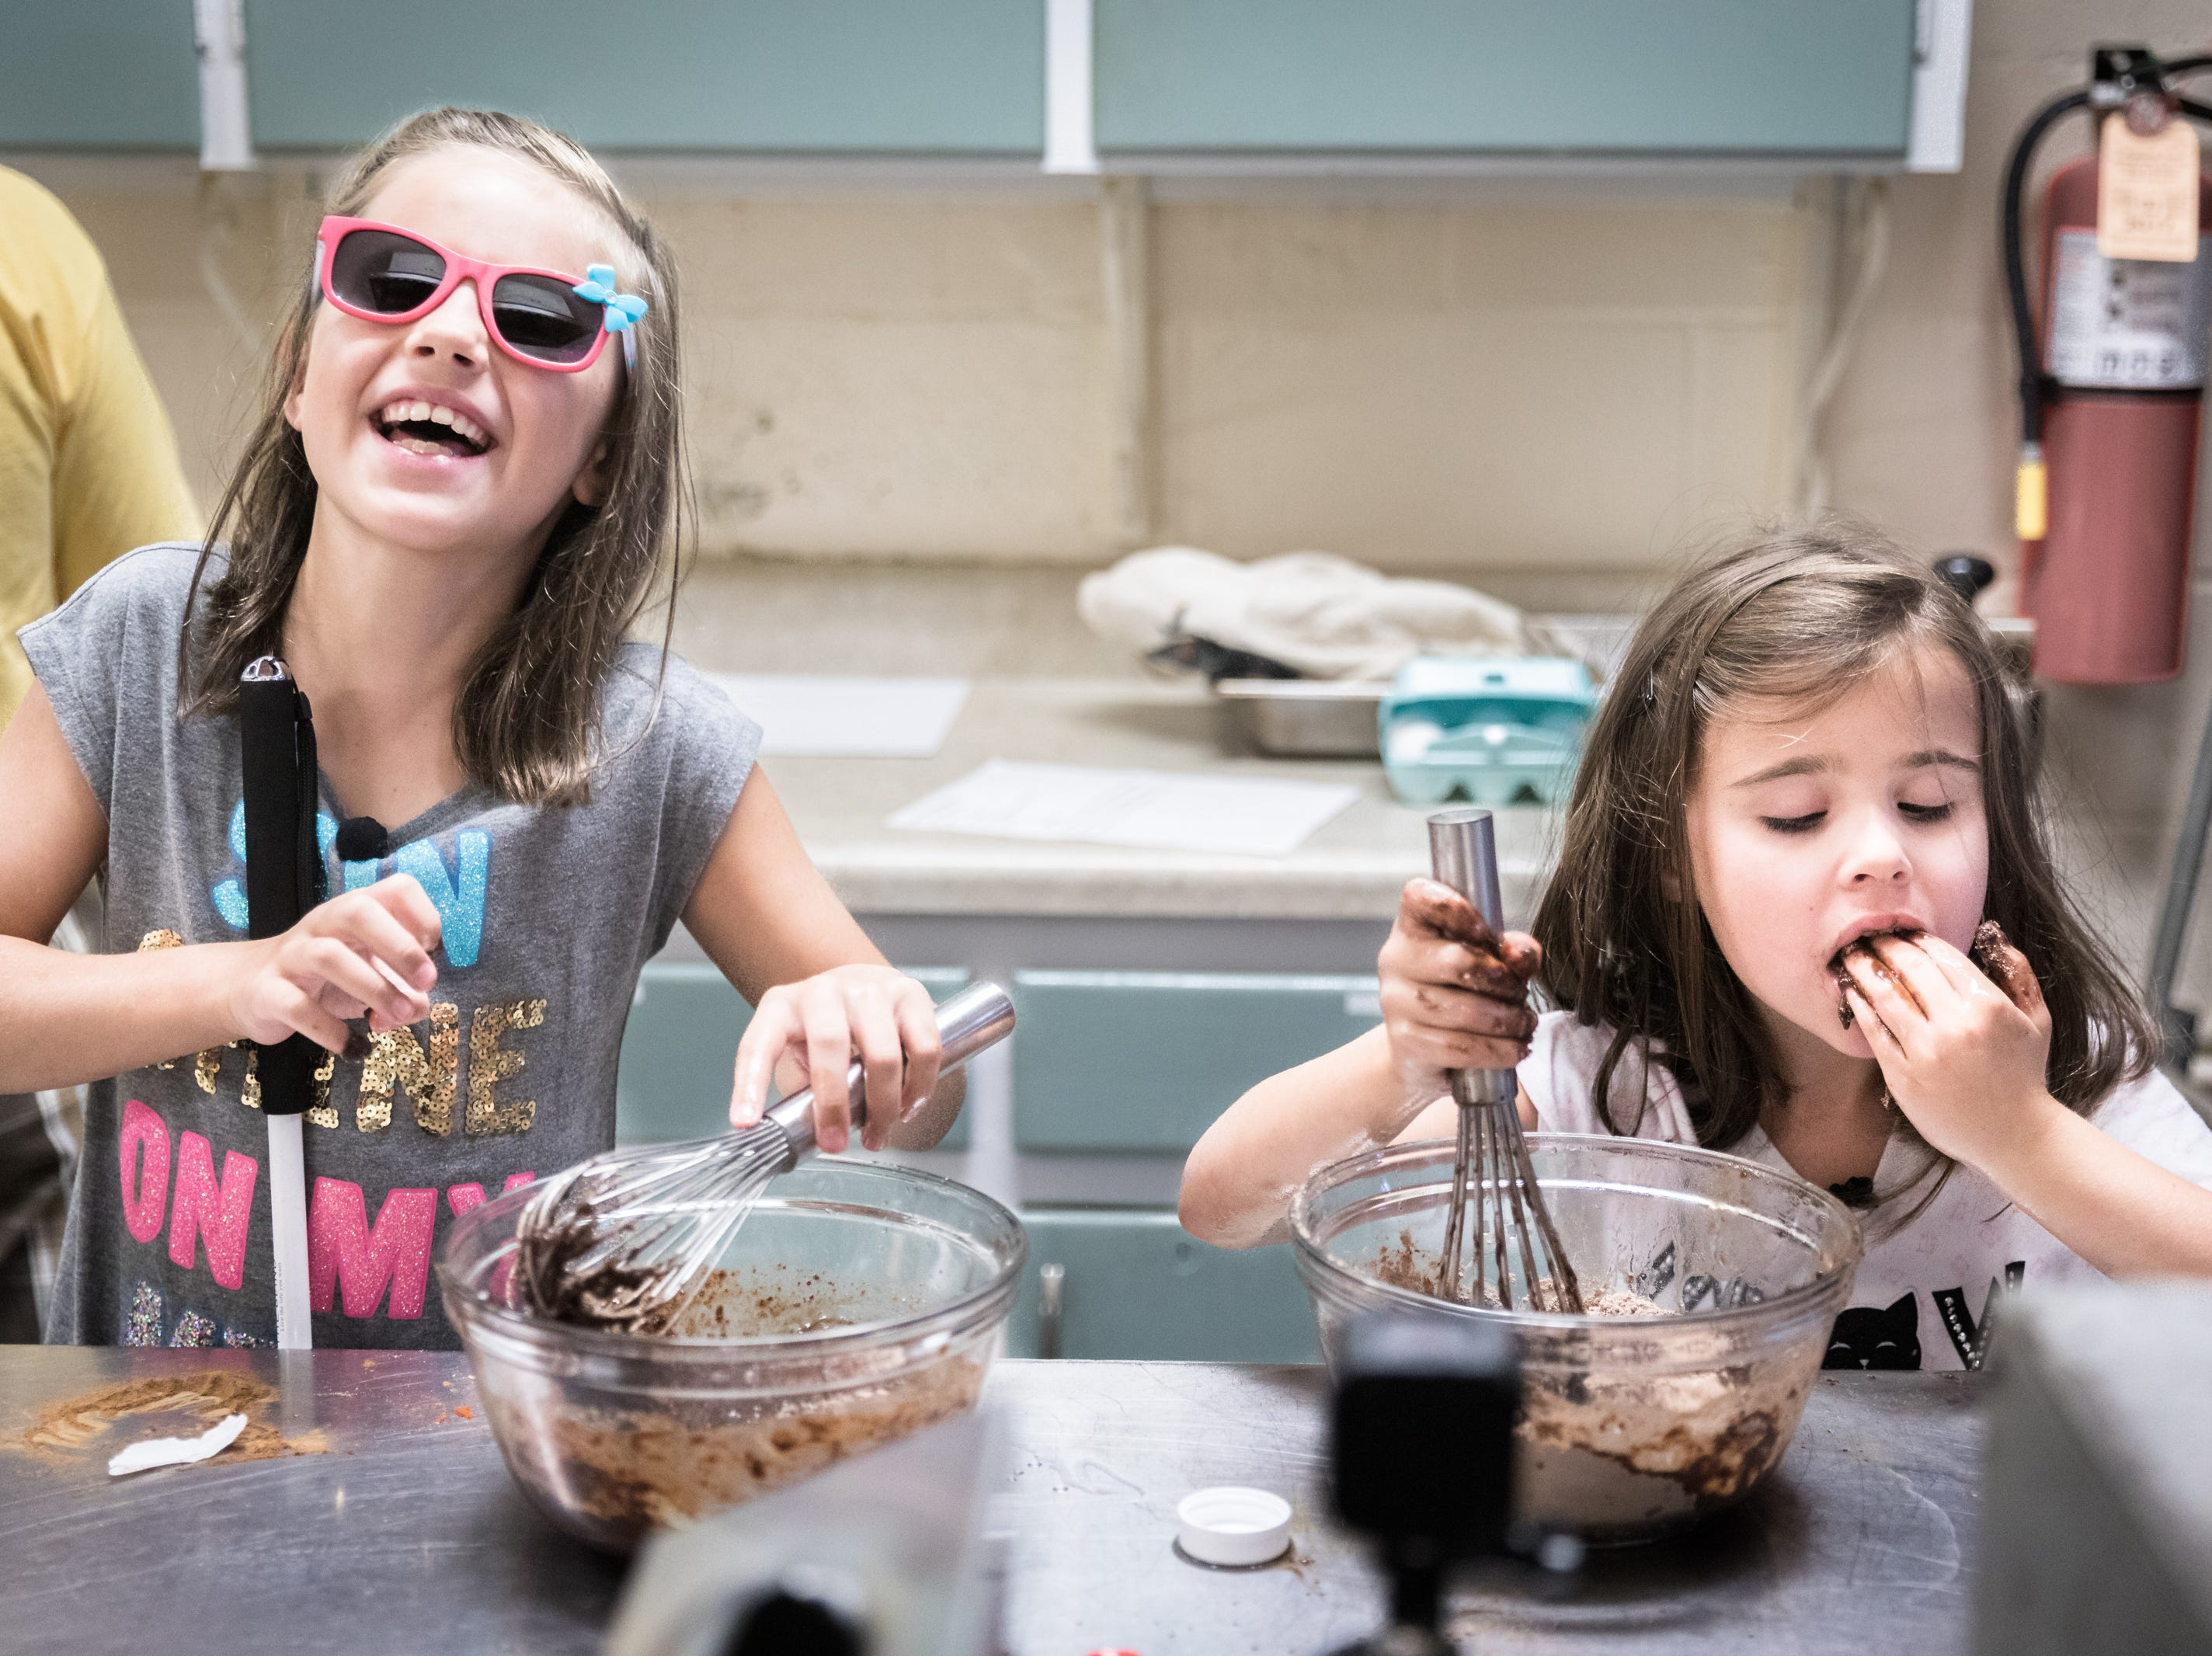 Layla Hildenbrand, 8, of Mills River, and Kyleigh Adkins, 6, of Hickory, both campers at SEE day camp for children with visual impairment provided by IFB Solutions, mix brownie batter as they prepare a lunch for the campers' parents at Grace Baptist Church in West Asheville, Thursday, July 12, 2018. The camp, which is supported by IFB Solutions and sponsors, is free of charge for campers and took place from July 9 to July 13.